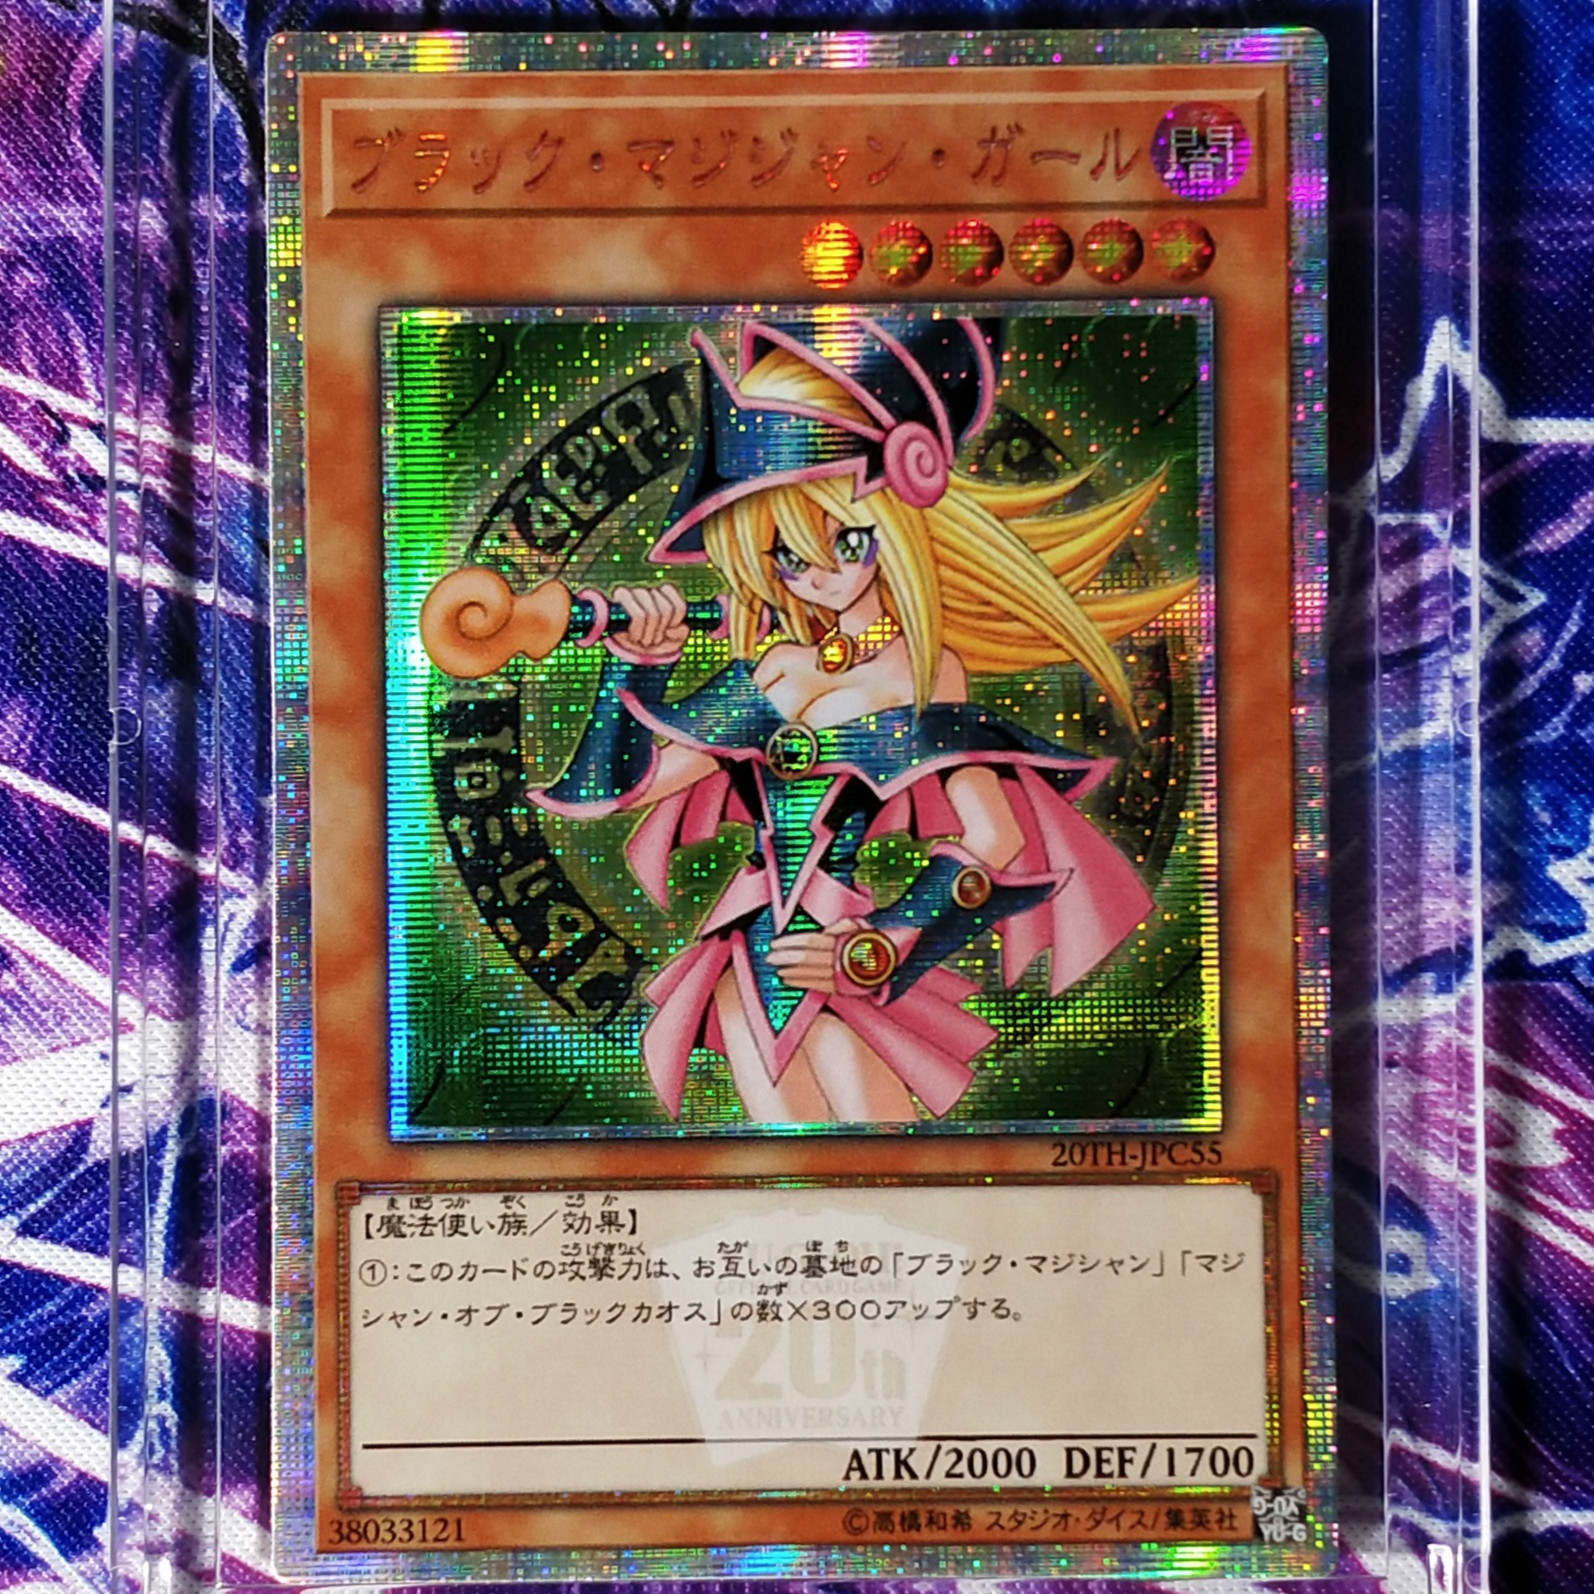 Yu Gi Oh Dark Magician Girl DIY Colorful Toys Hobbies Hobby Collectibles Game Collection Anime Cards 6